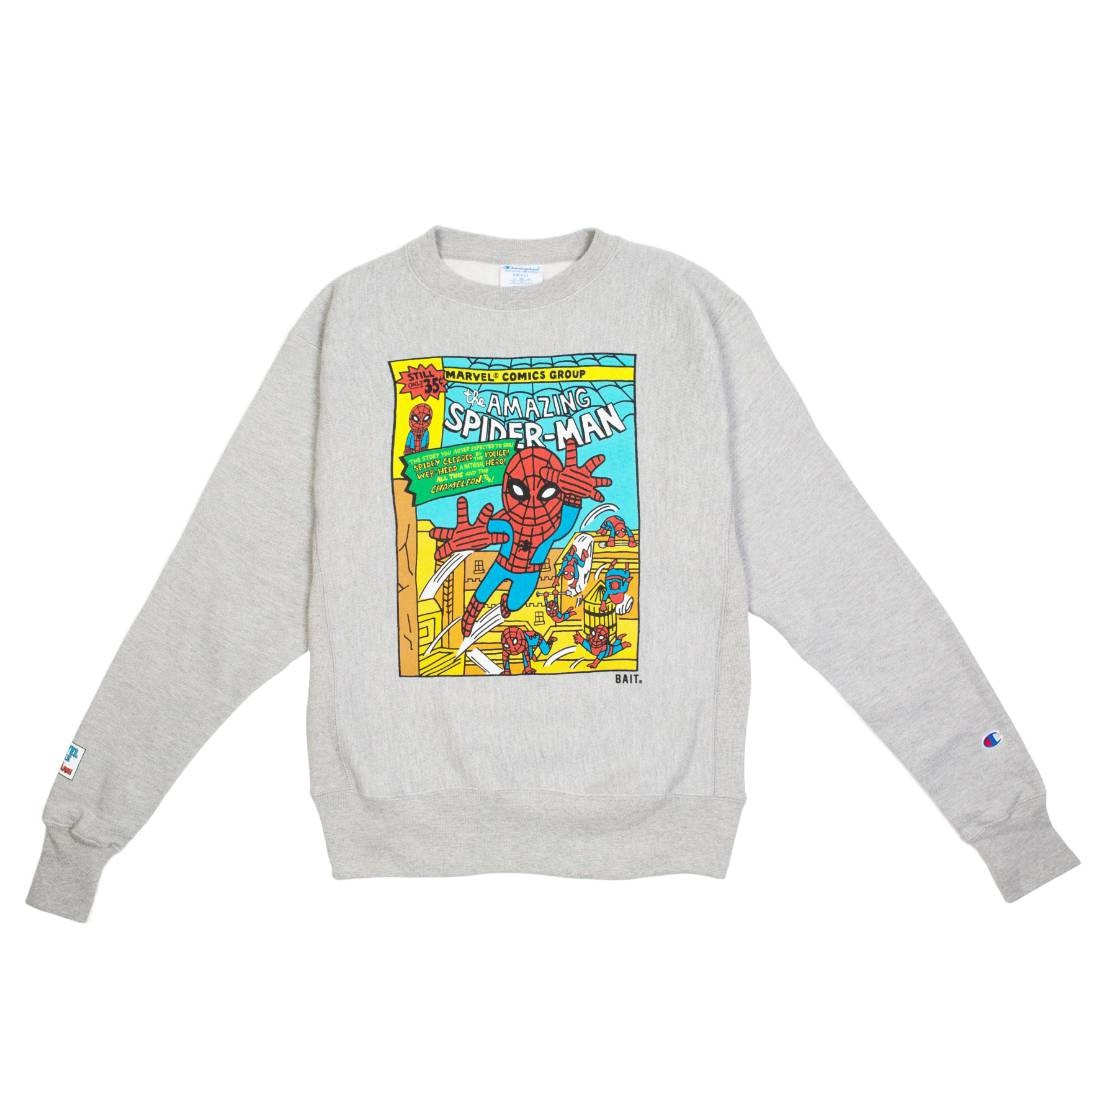 BAIT x Spiderman x Champion Men Spiderman Comic Crewneck Sweater (gray)